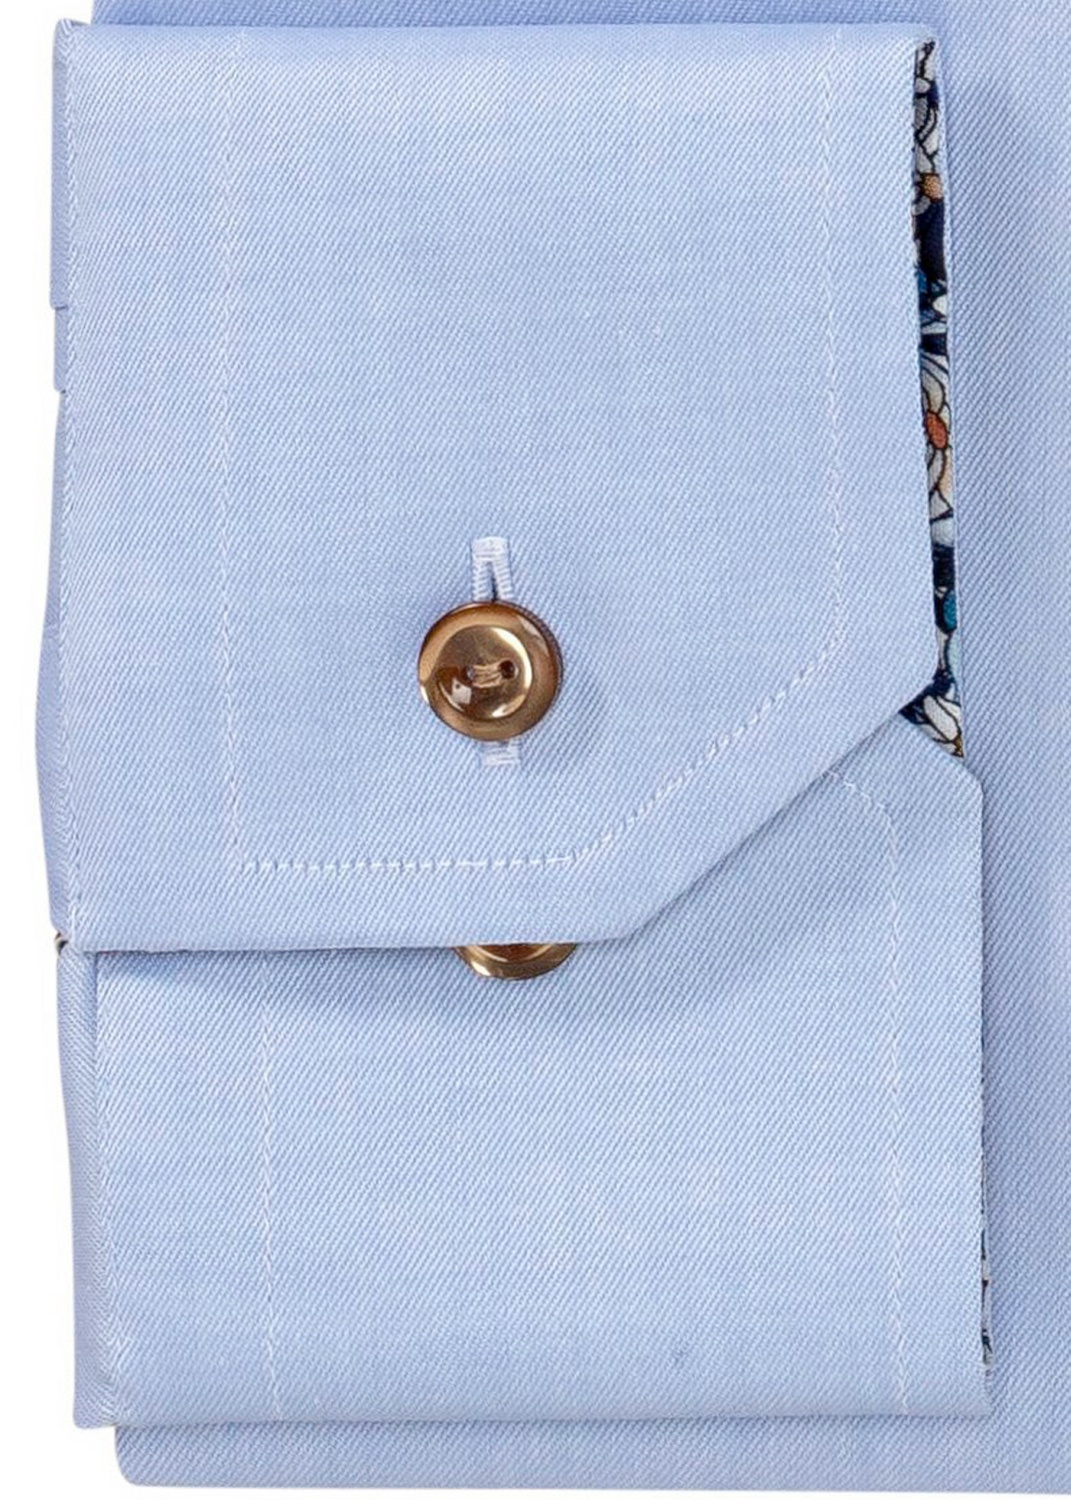 1000030592151 Men shirt: Business / Signature Twill image number 2